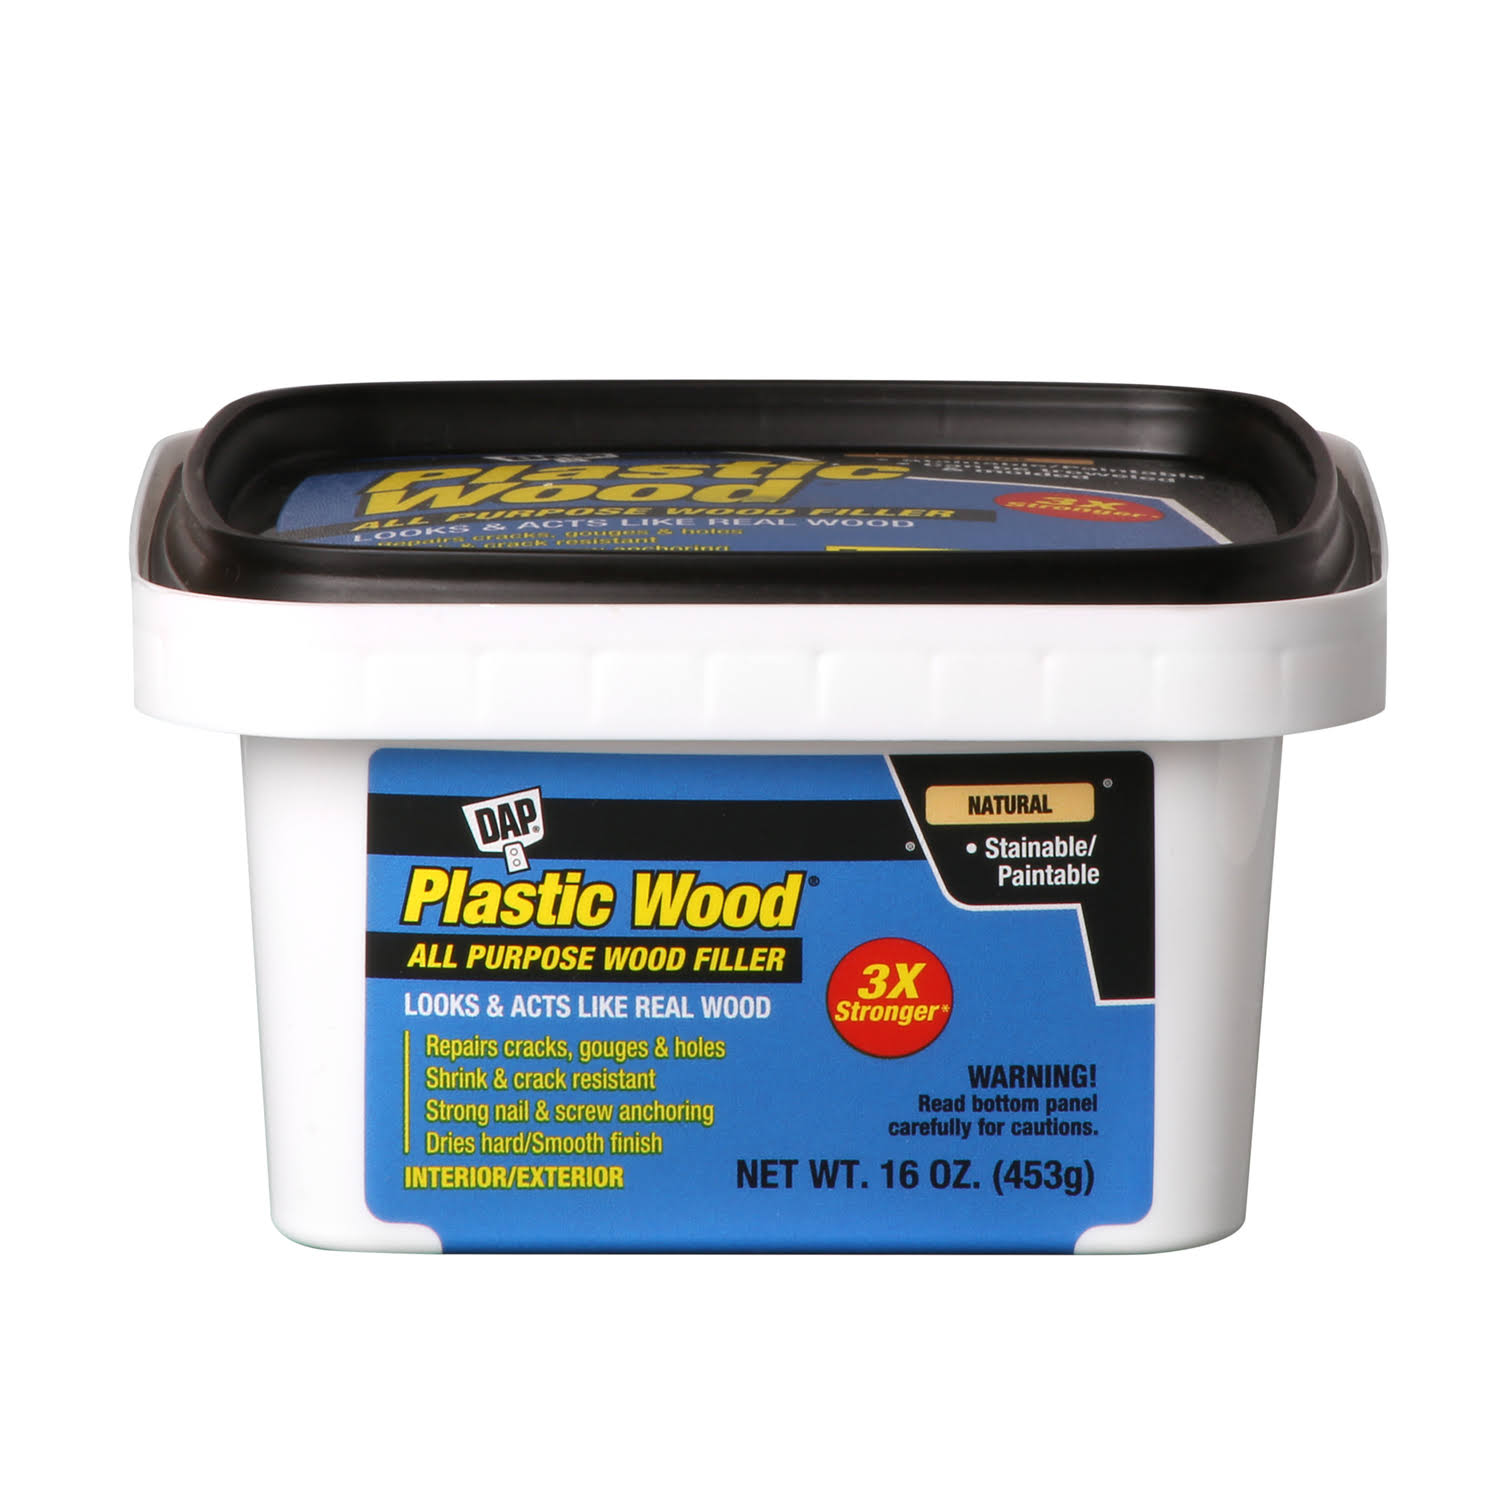 DAP Natural Plastic Wood Latex Wood Filler - 16oz